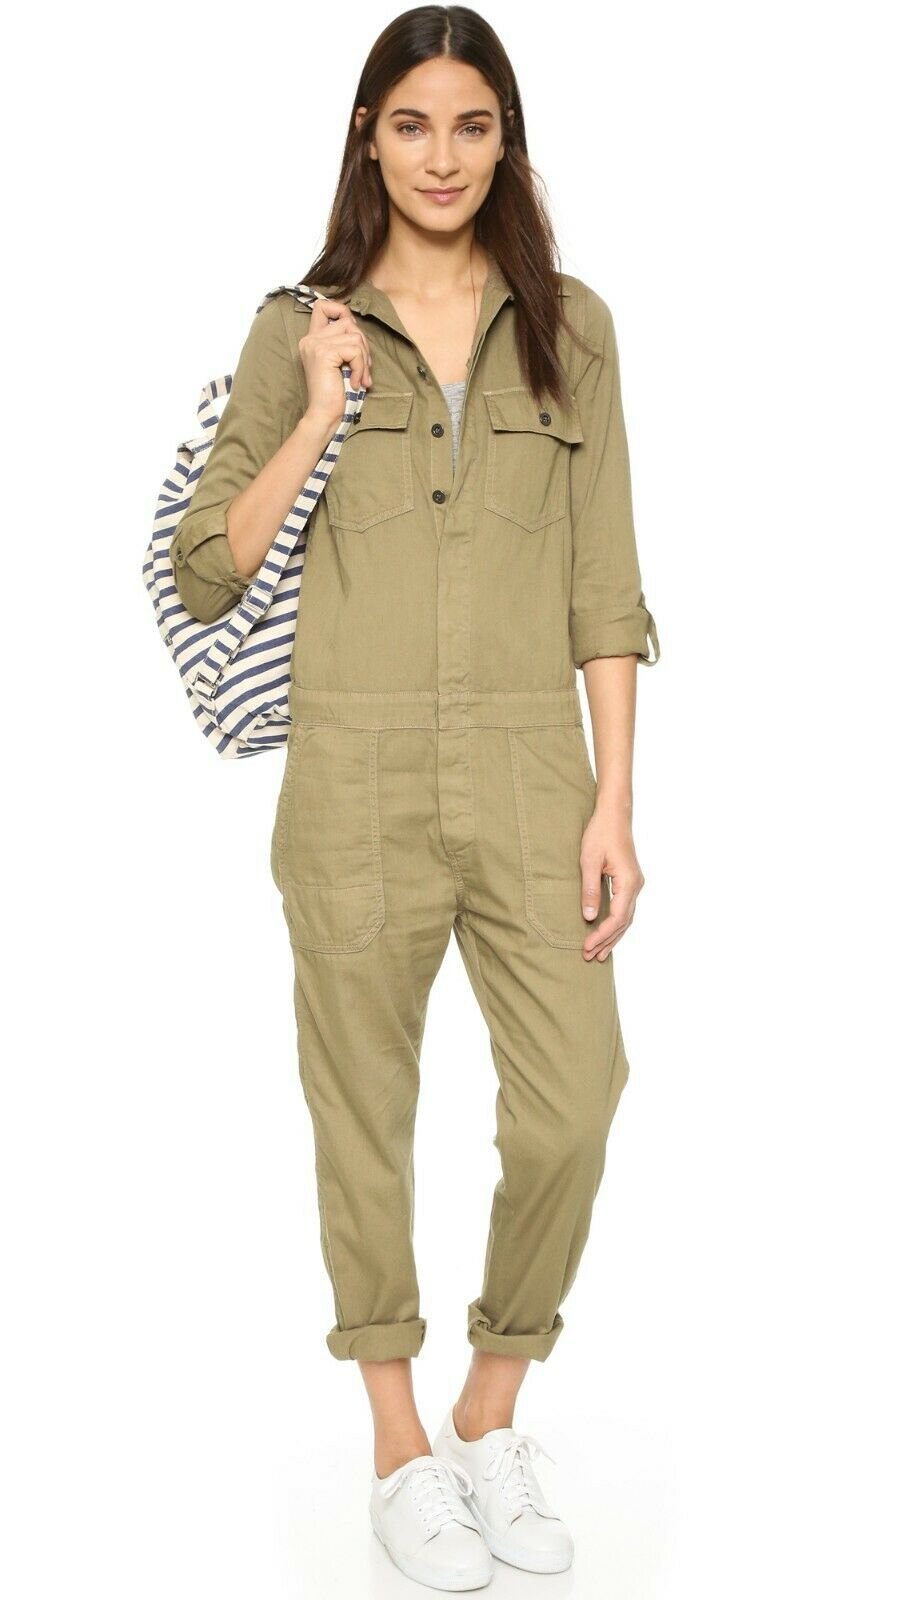 NWT Citizens of Humanity  308 Tallulah Jumpsuit in Beach Dune; S